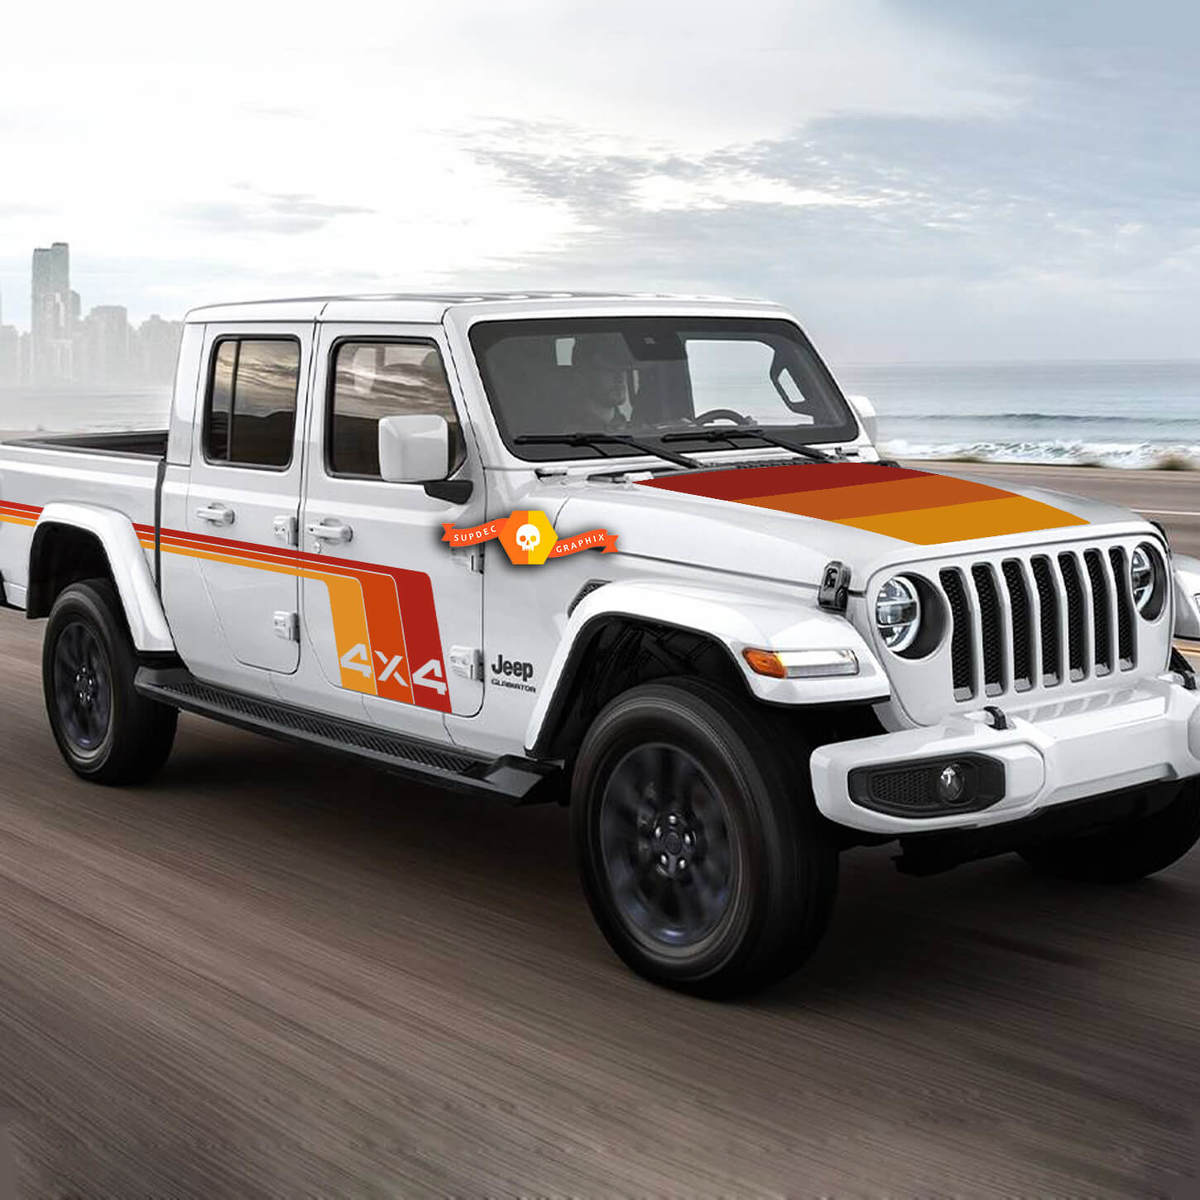 graphic kit - Jeep Gladiator 2020 Rubicon retro vintage 4x4 80s racing stripe kit sport Off Road